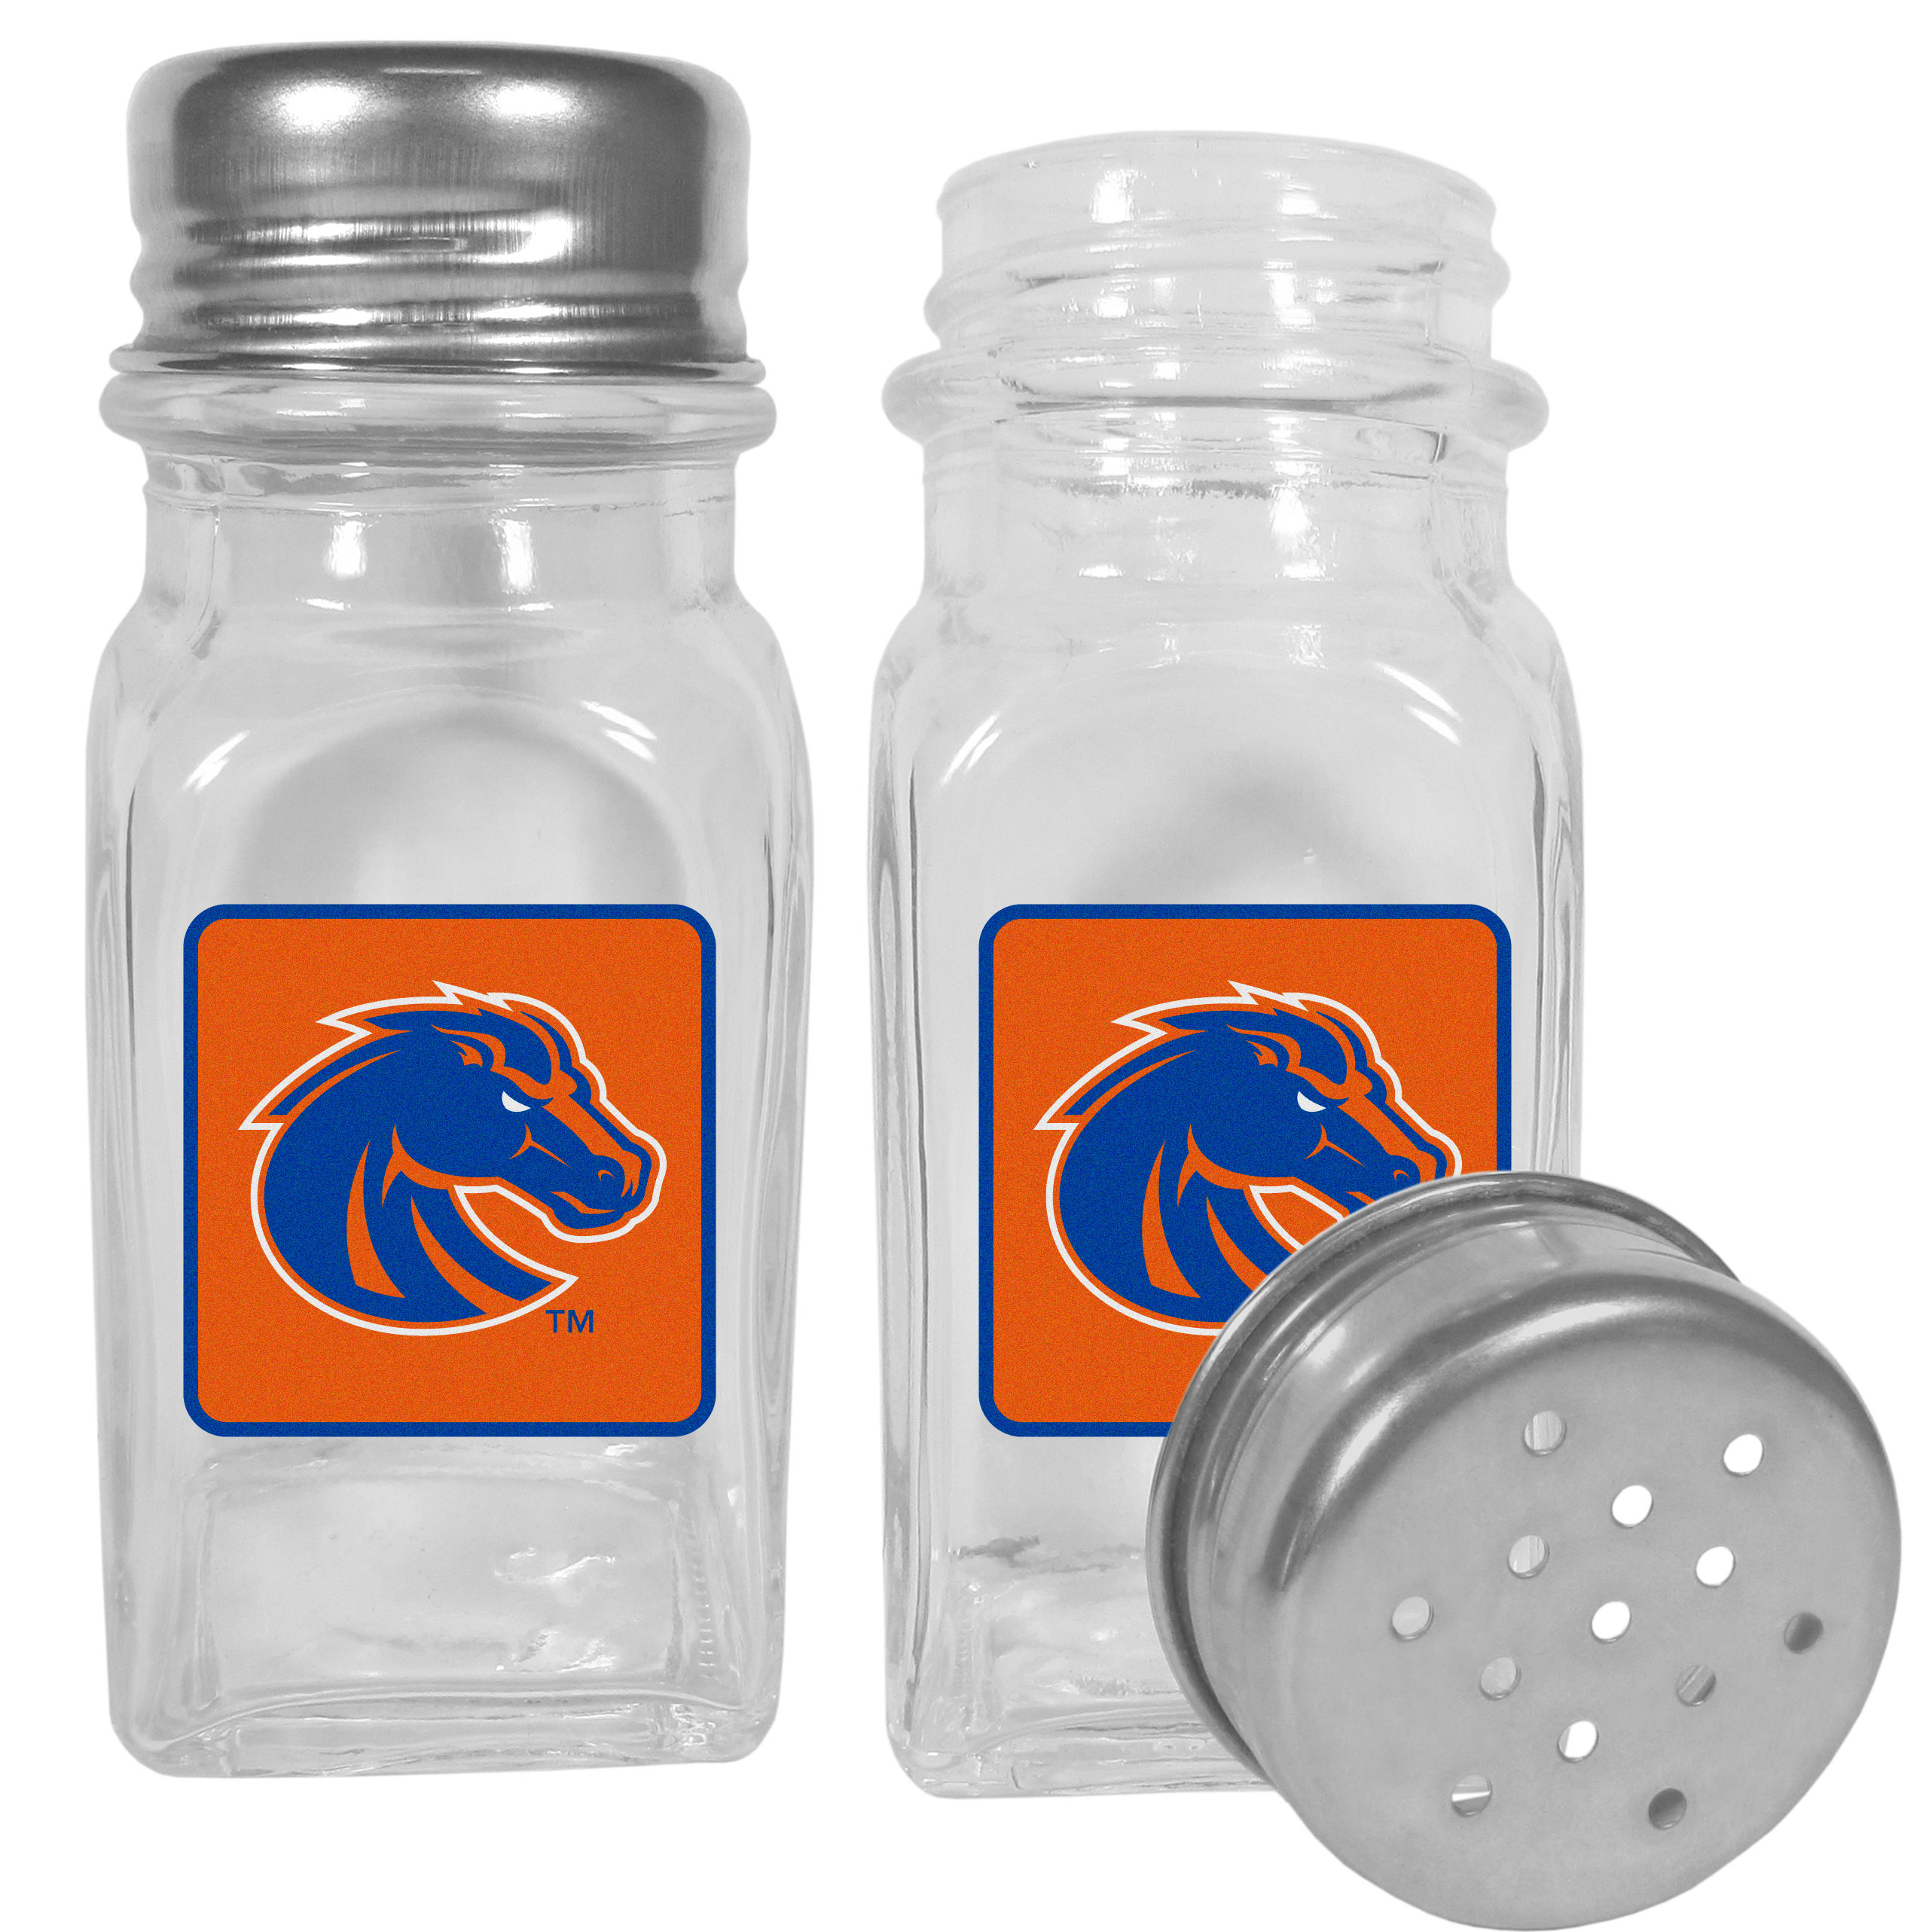 Boise St. Broncos Graphics Salt and Pepper Shaker - No tailgate party is complete without your Boise St. Broncos salt & pepper shakers featuring bright team logos. The diner replica salt and pepper shakers are glass with screw top lids. These team shakers are a great grill accessory whether you are barbecuing on the patio, picnicing or having a game day party.